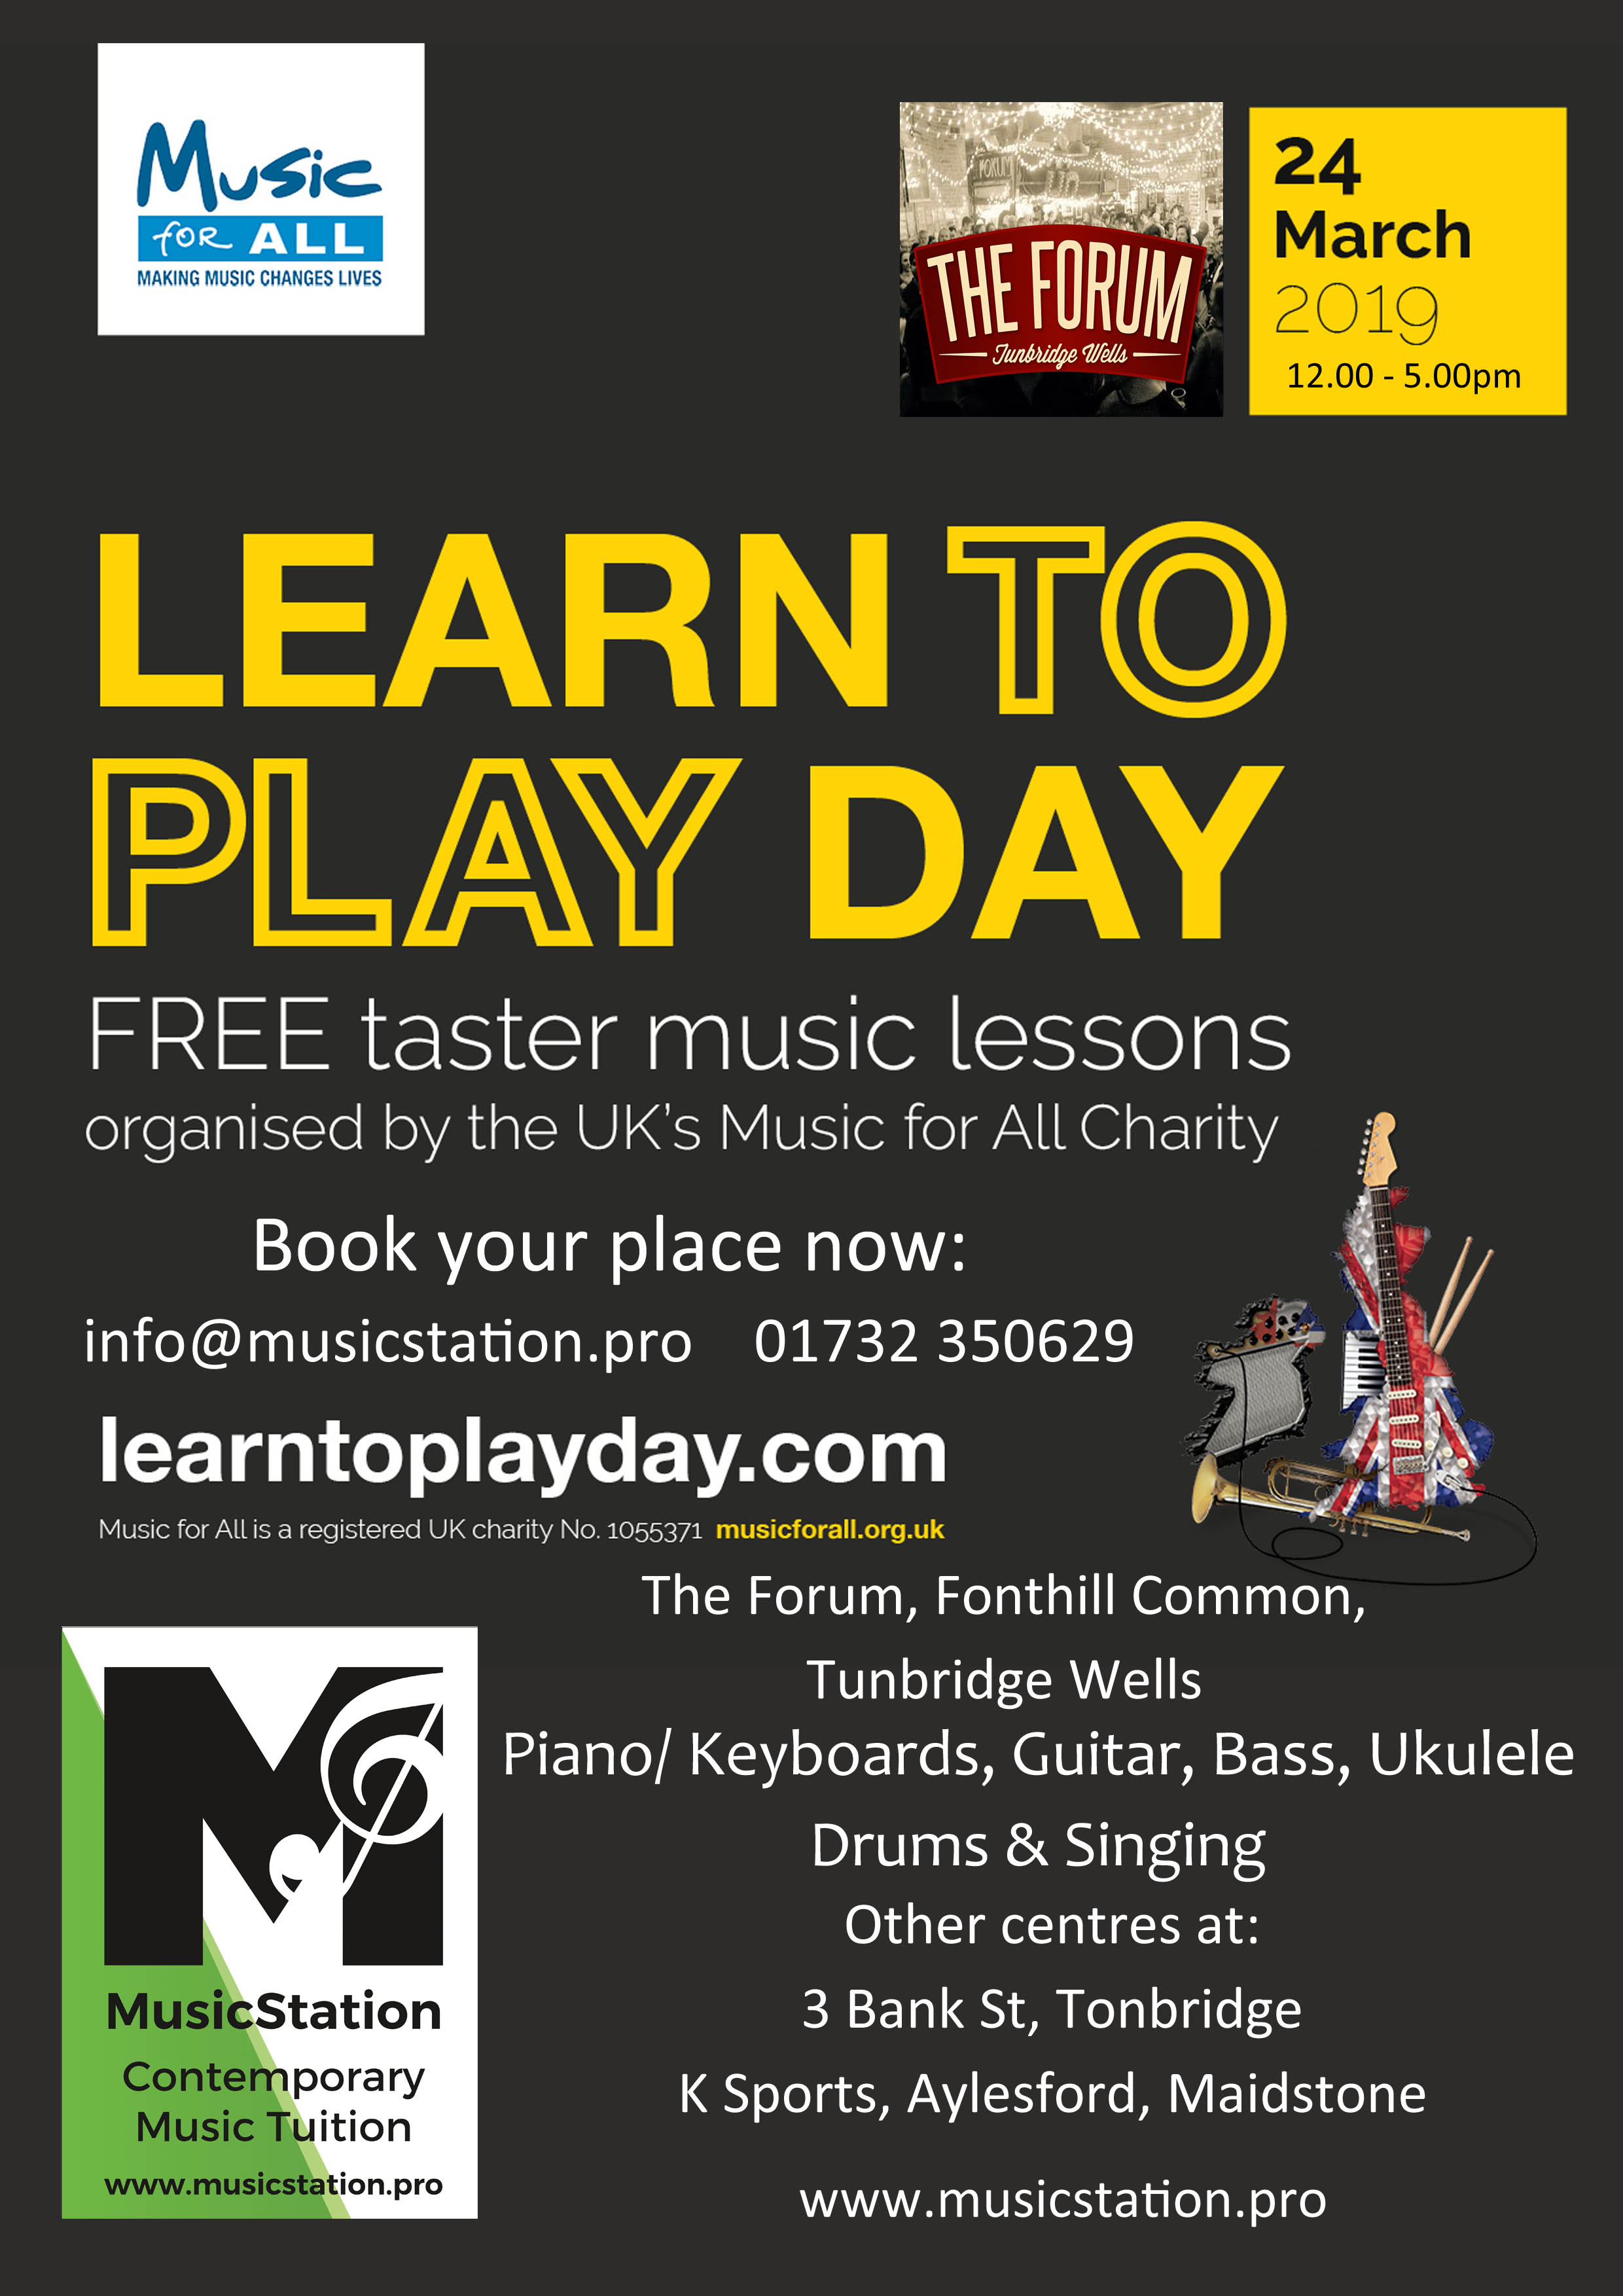 Learn To Play Day at The Forum, Royal Tunbridge Wells on 24 Mar 2019